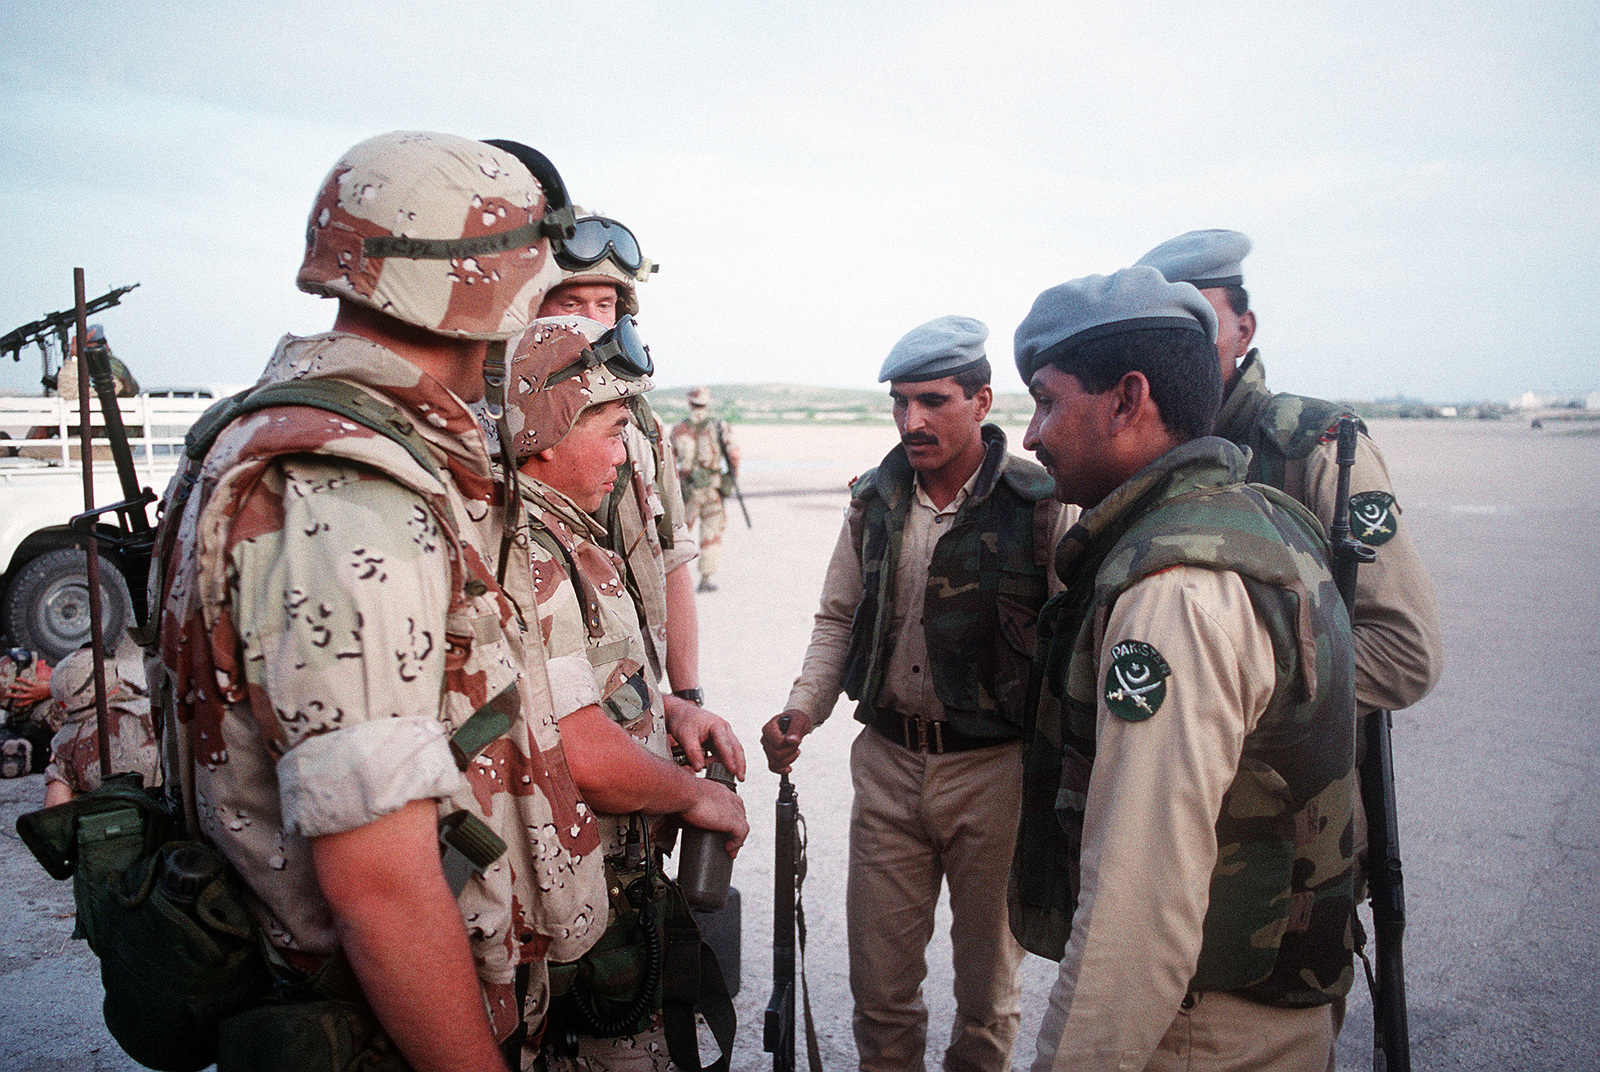 U.S. Marines converse with Pakistani military personnel at Mogadishu International Airport. The troops are in the